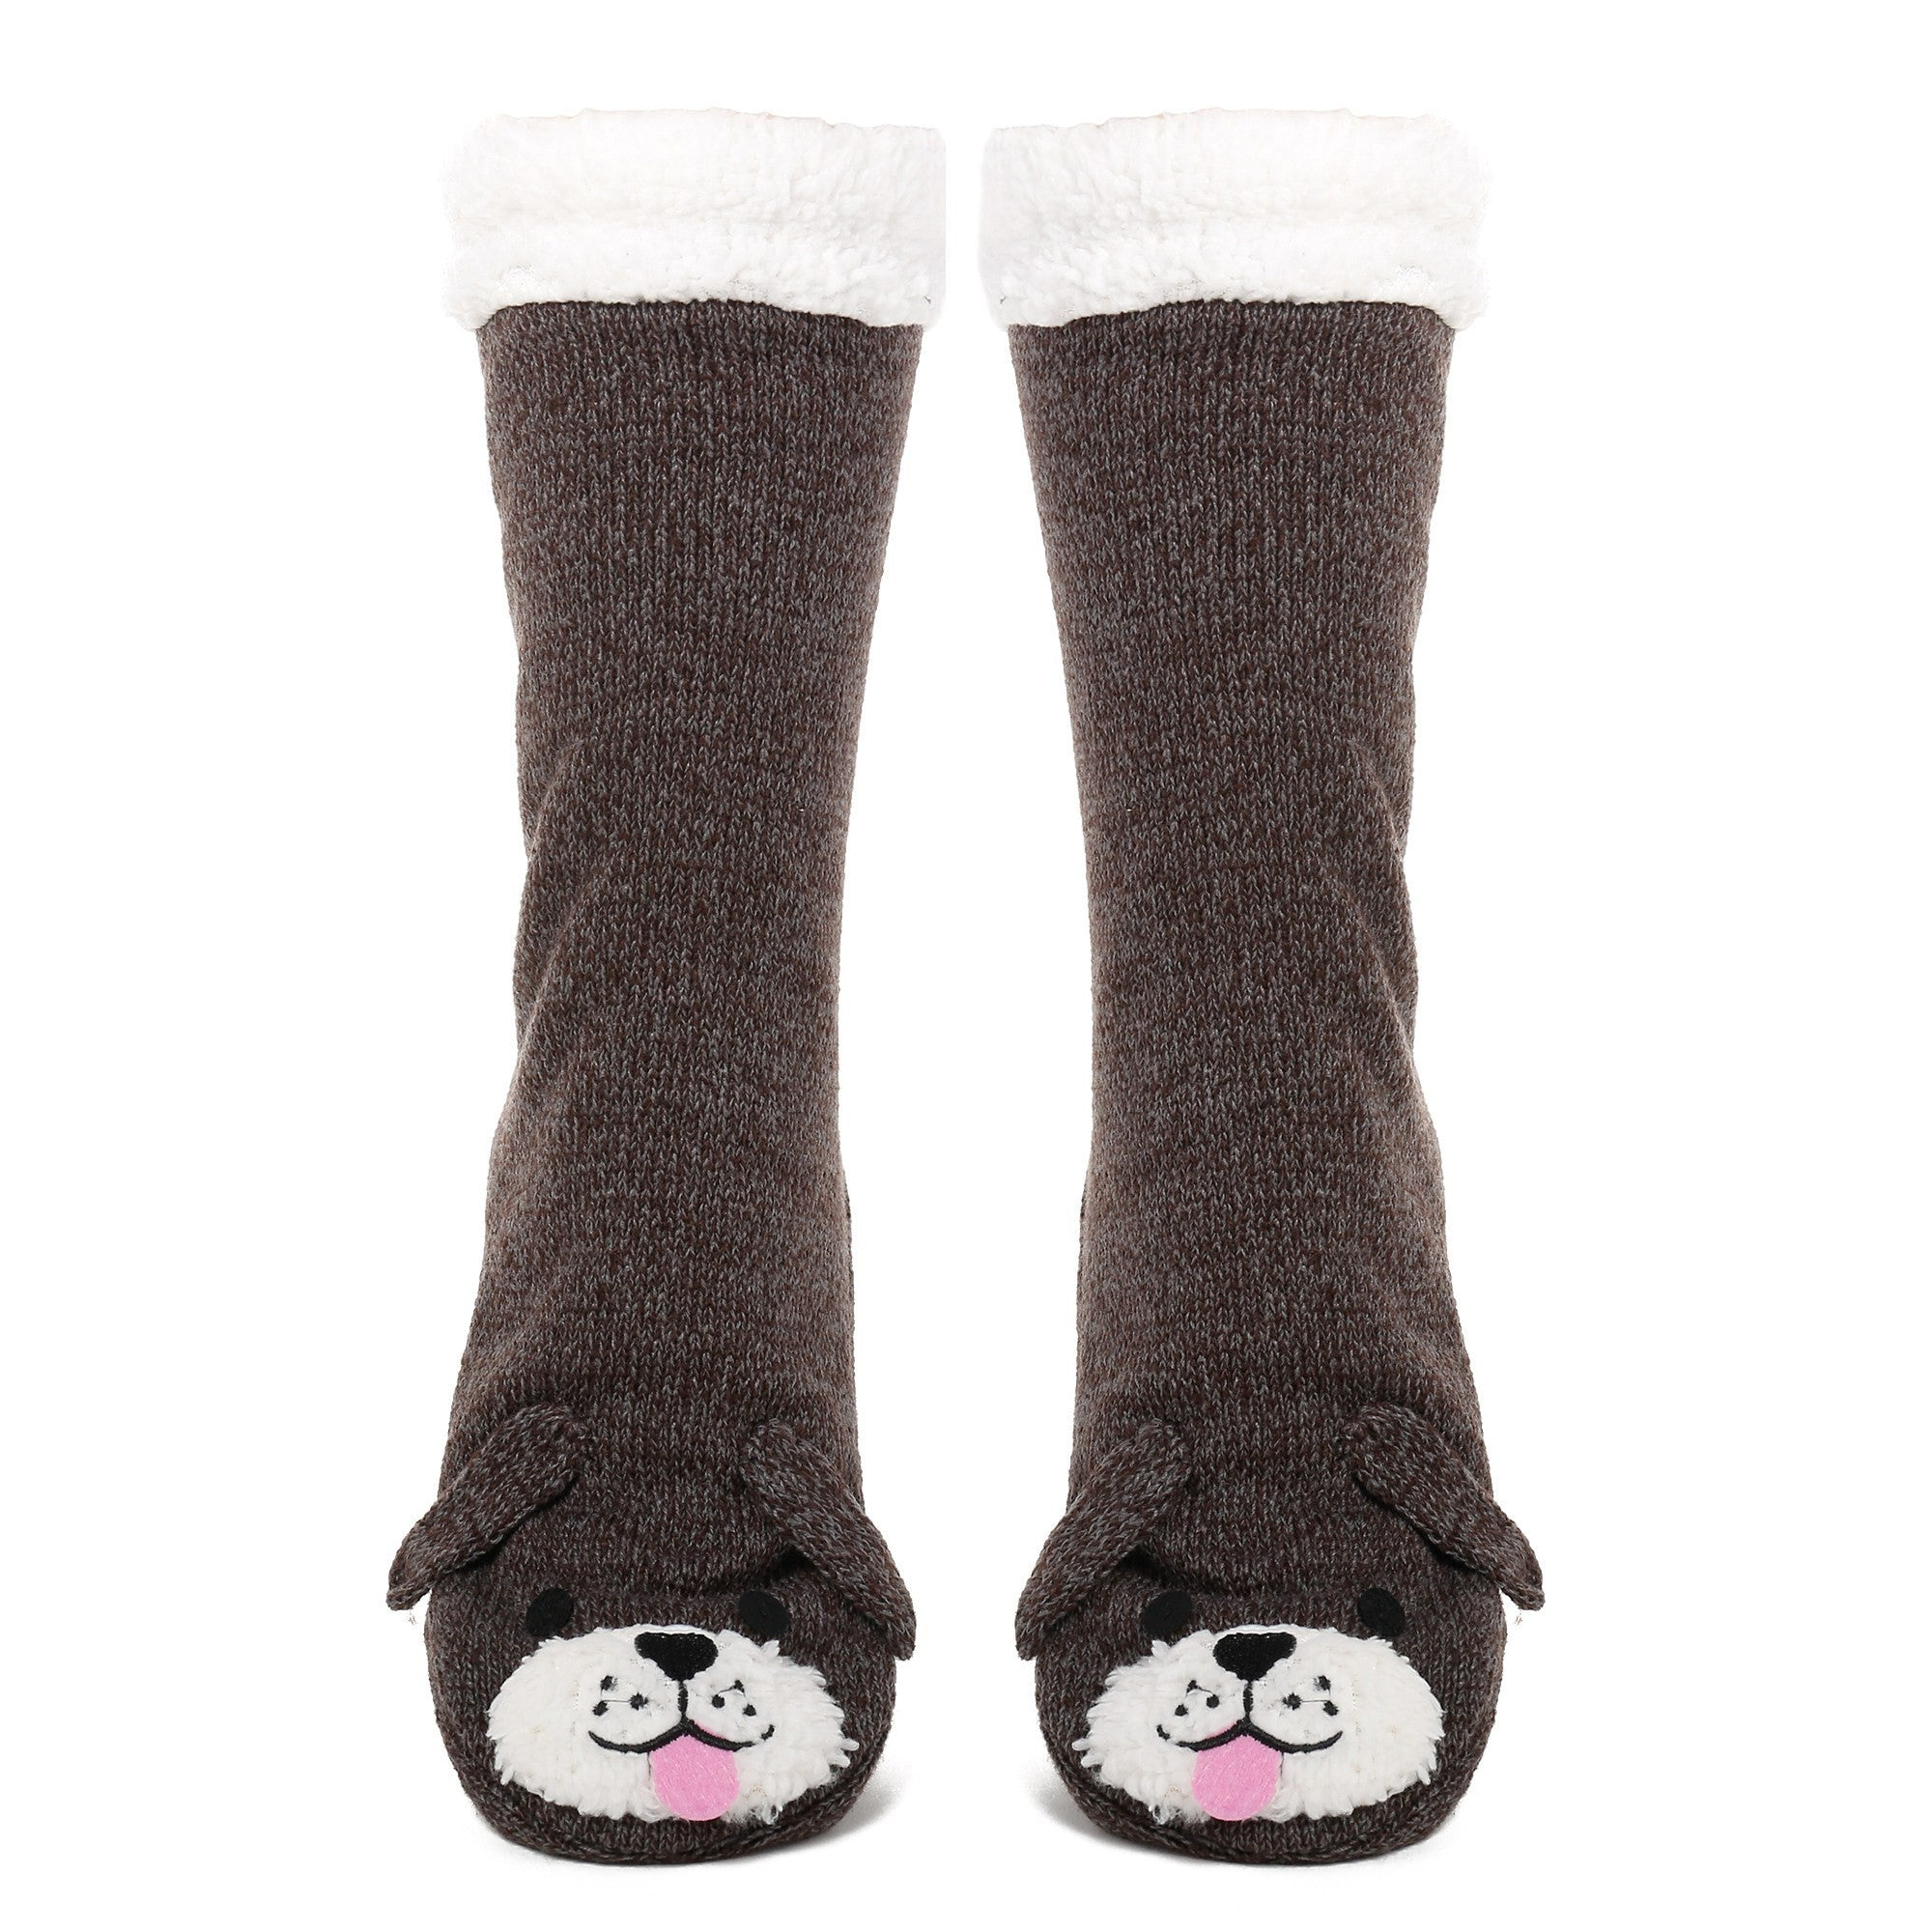 Women's Cute Knit Dog Slipper Socks